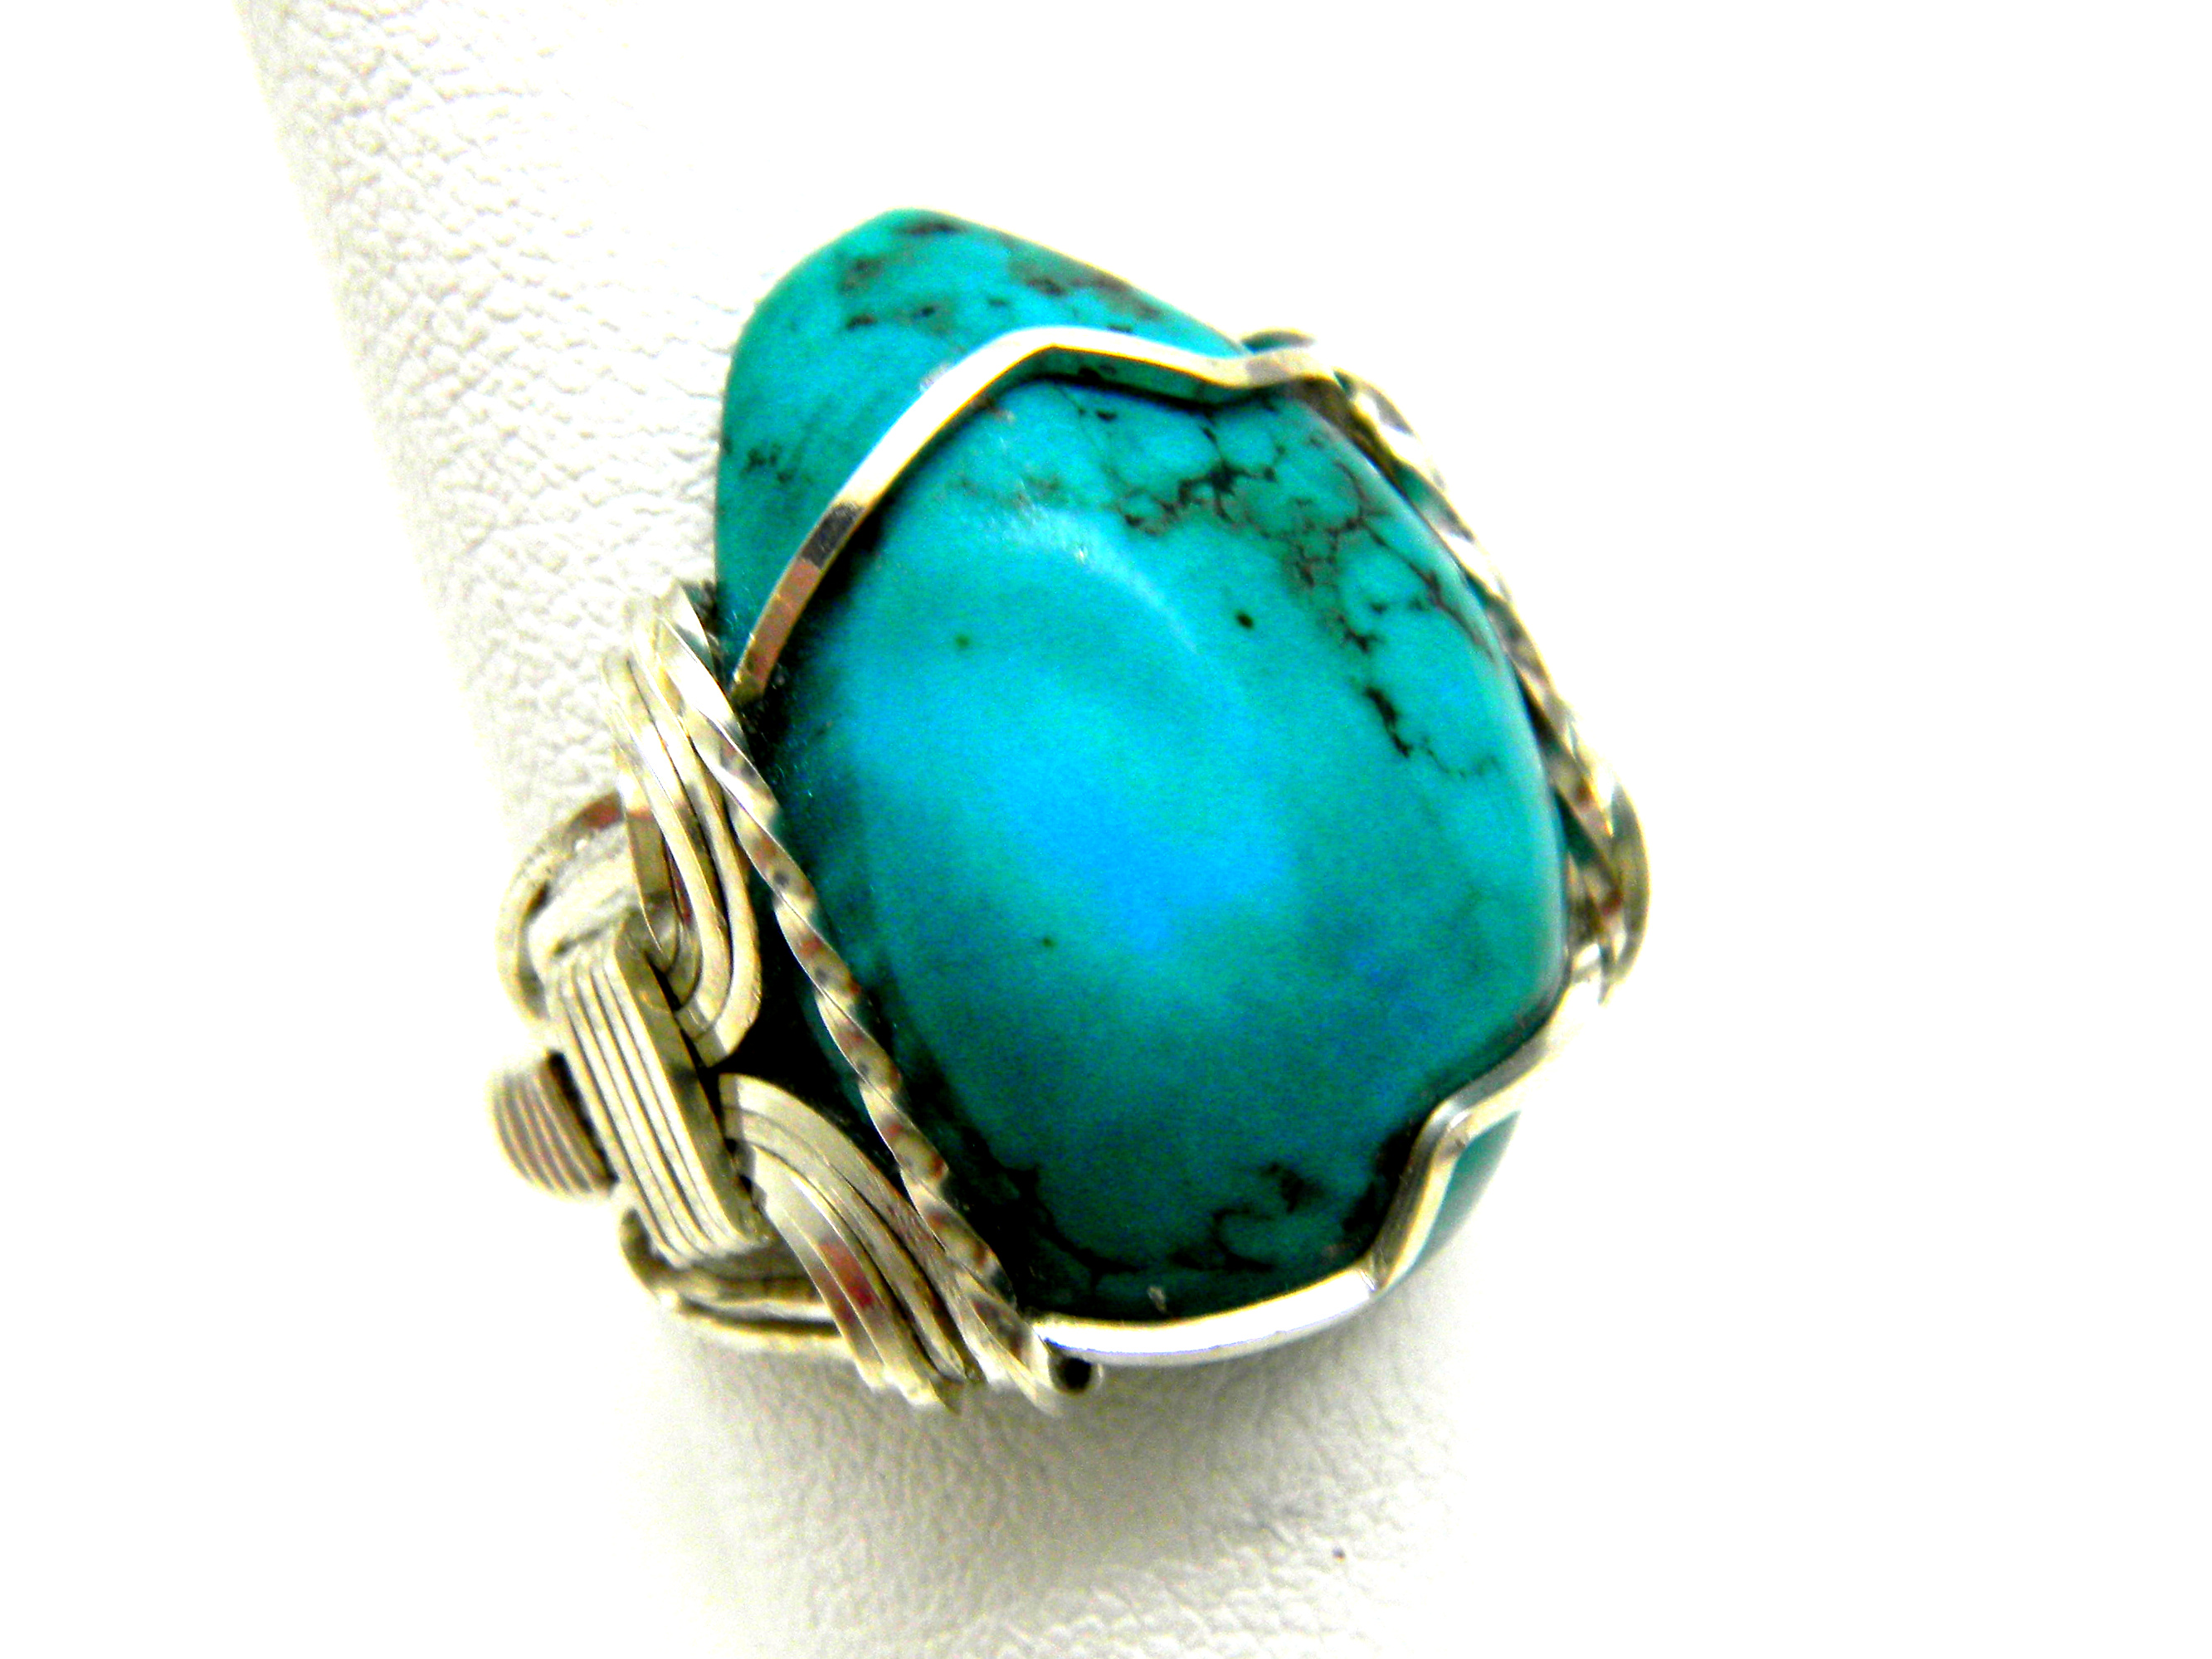 About turquoise stabilizing turquoise jewelry making for How to make rock jewelry